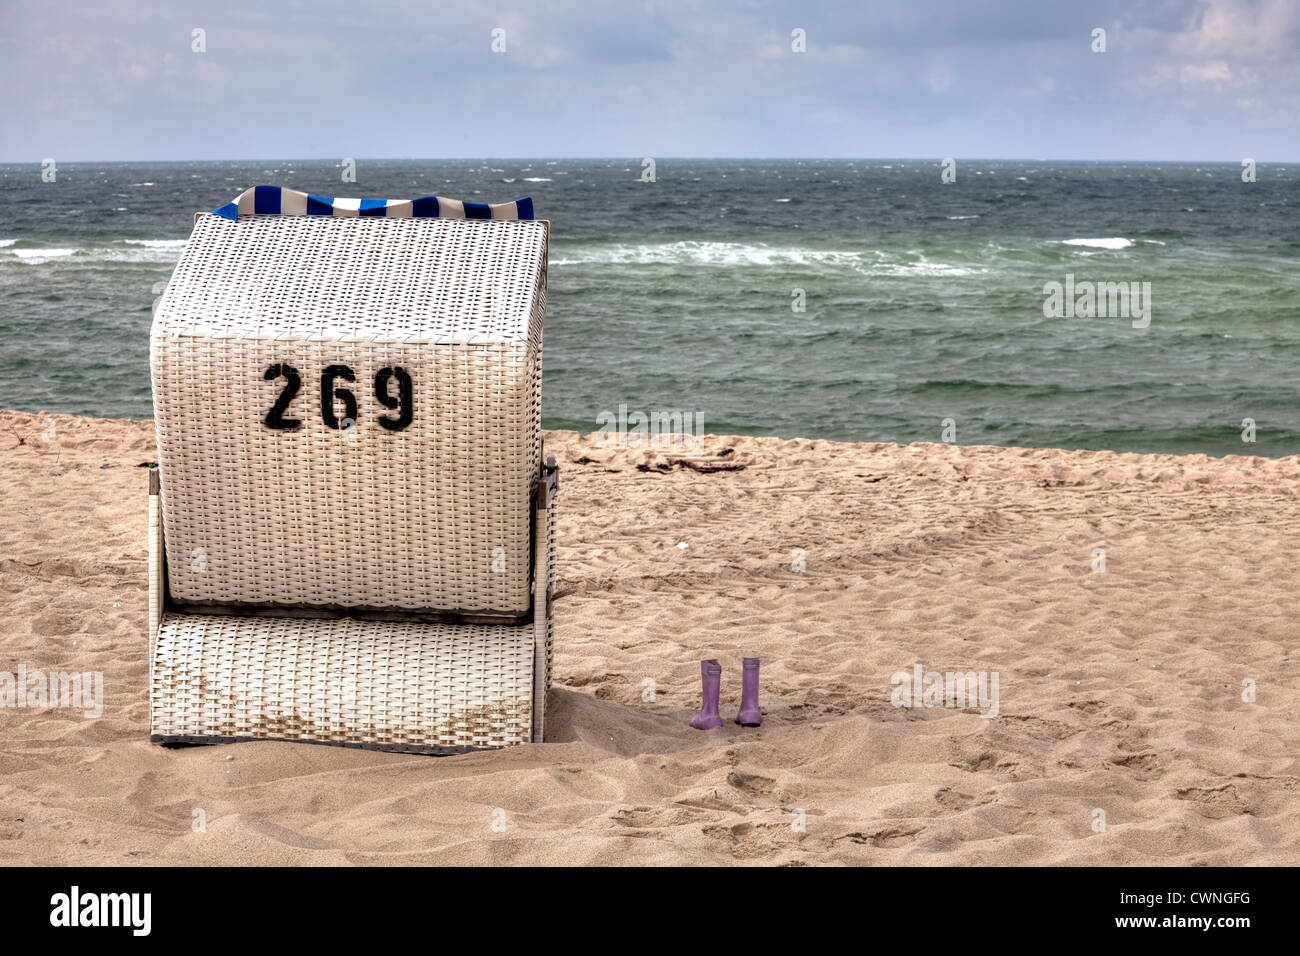 Beach chair, rubber boots, Sylt, Schleswig-Holstein, Germany - Stock Image